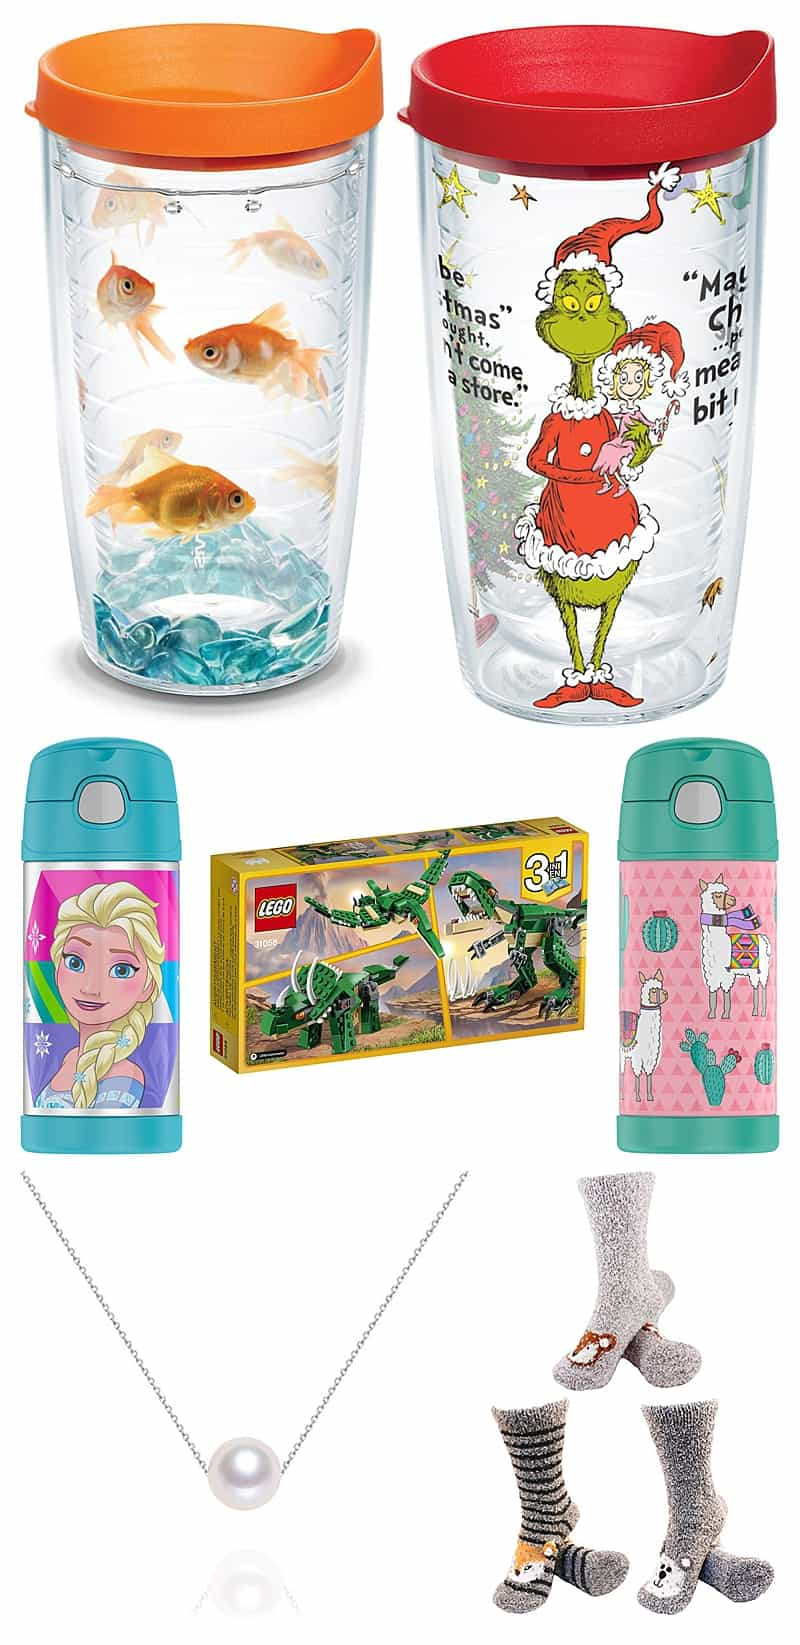 Stocking Stuffers For Kids Including: Tervis Cups, Sippy Cups, Legos, Necklace, and Socks